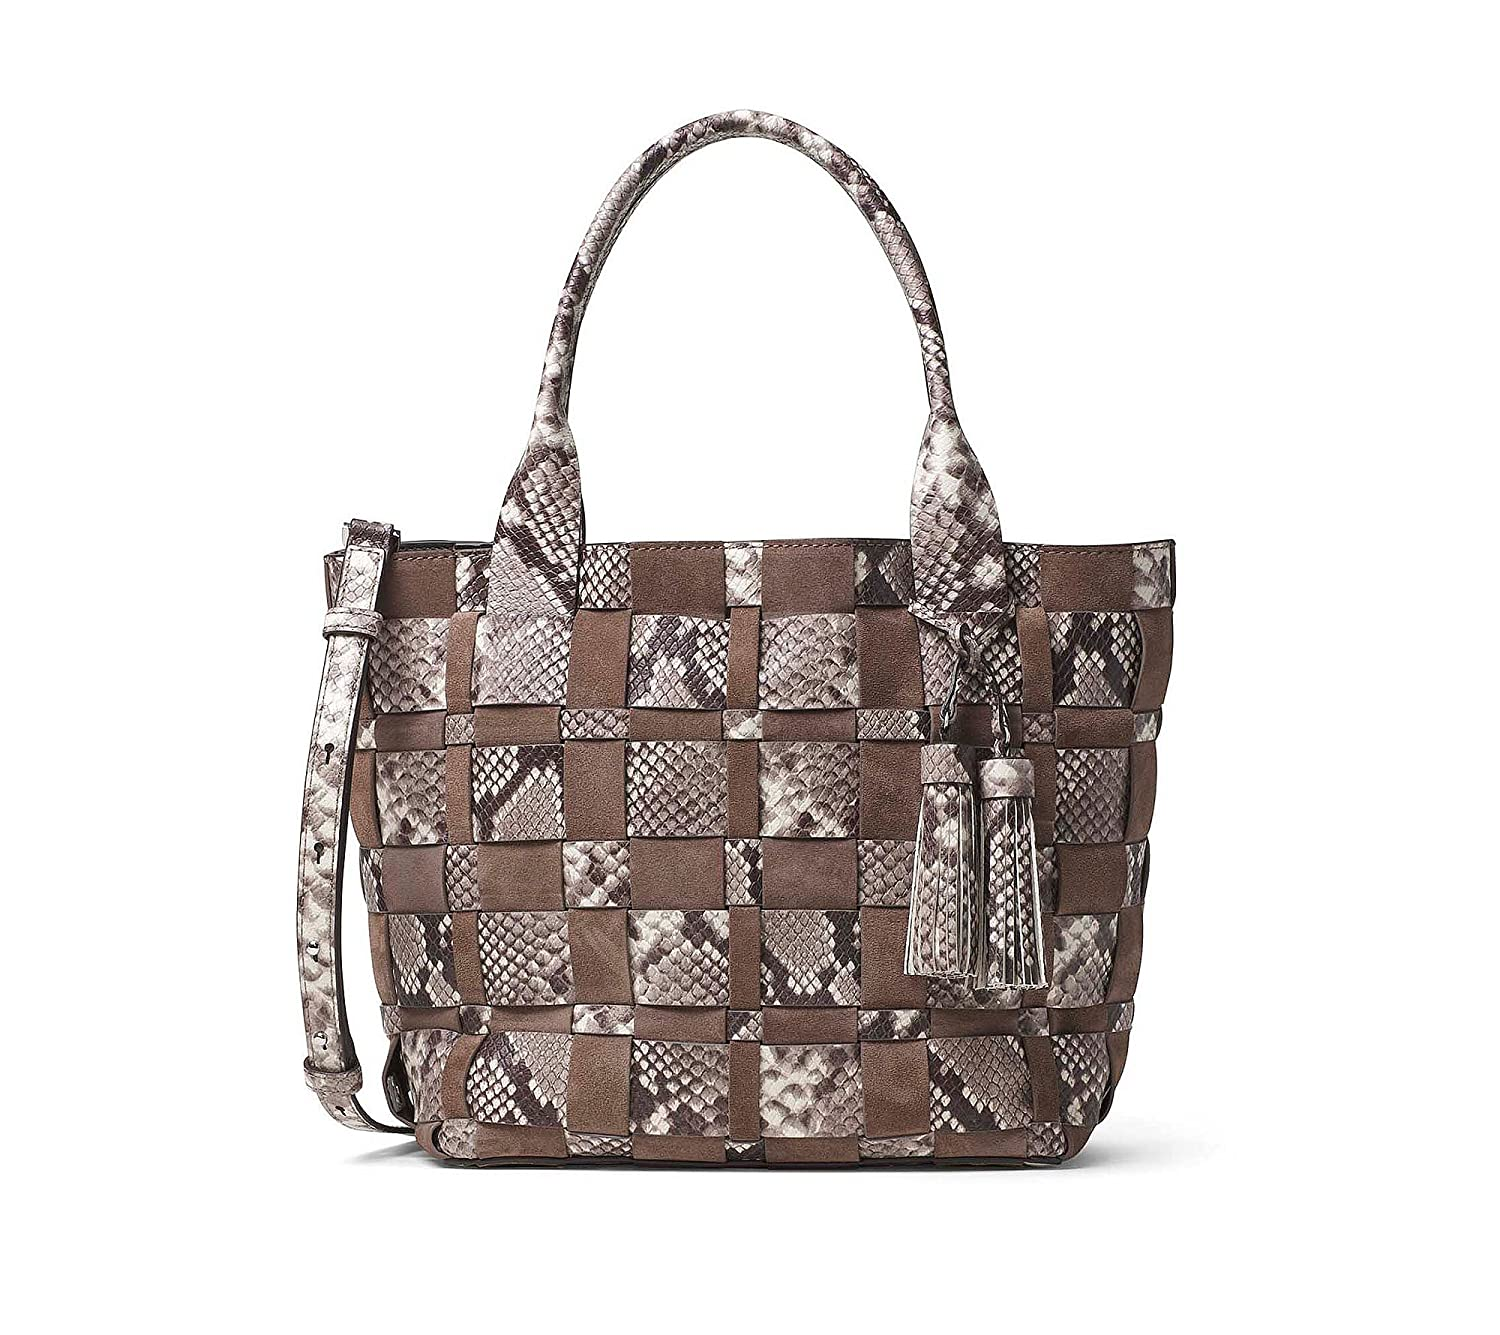 e1f33a5dd3eef5 Amazon.com: MICHAEL Michael Kors Vivian Medium Tote, Color Dark Dune:  Clothing